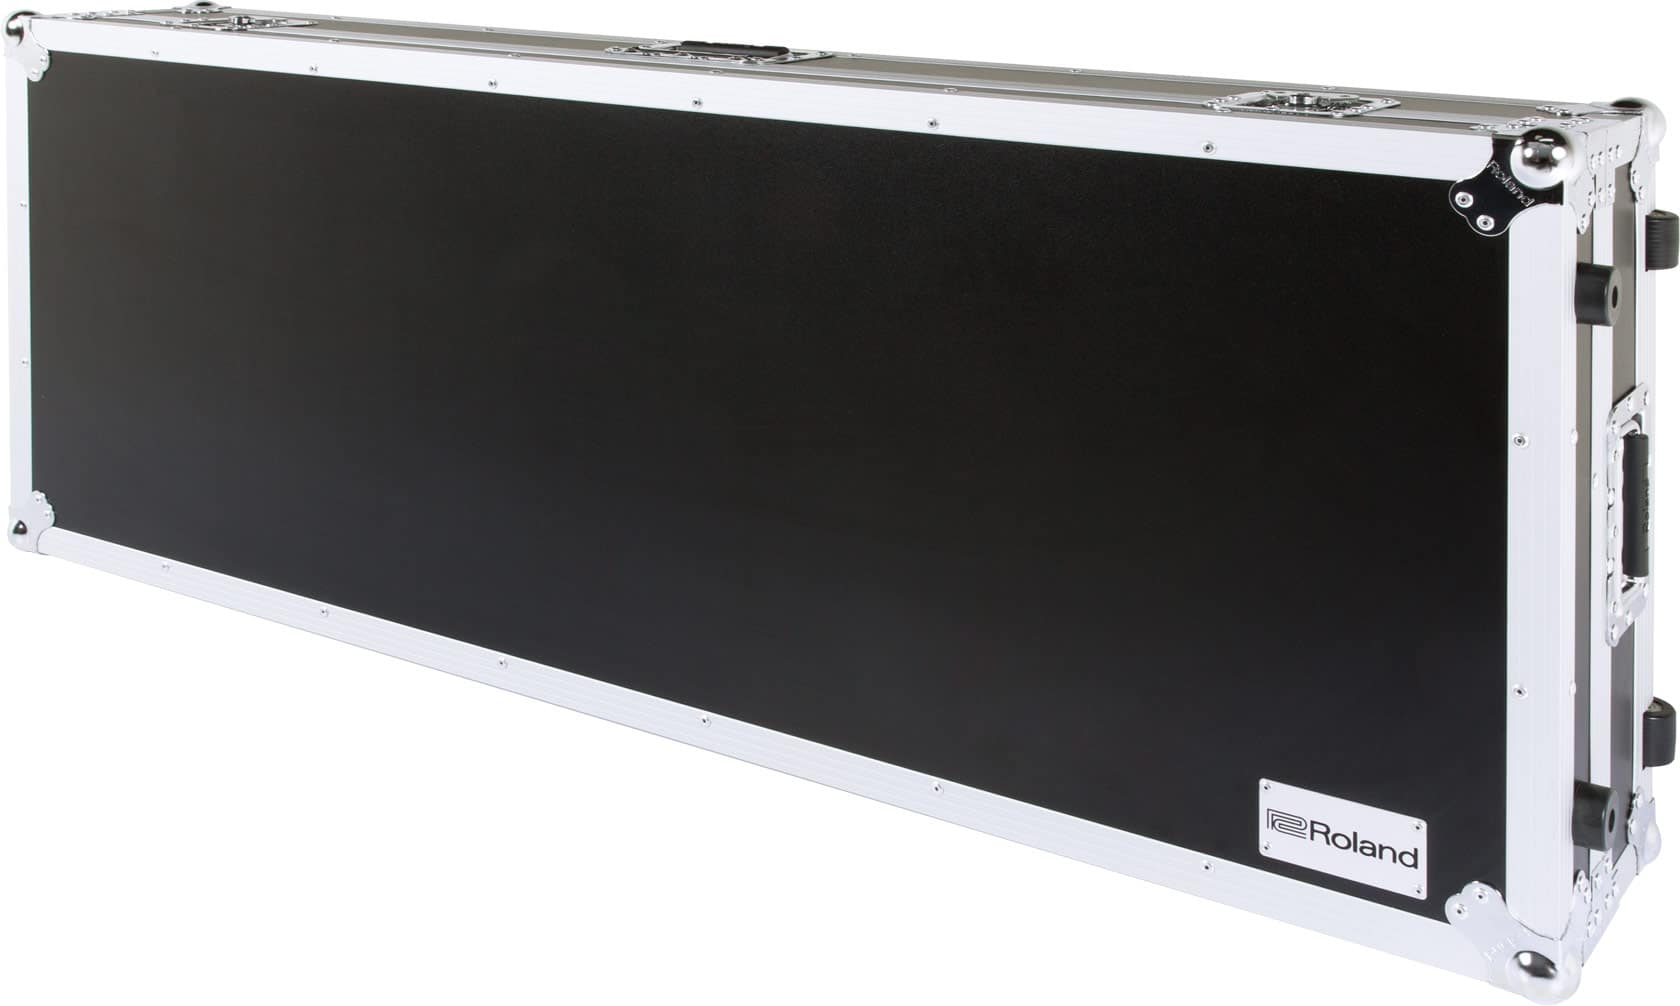 roland-rrc-76w-heavy-duty-road-case-for-76-note-keyboards MAIN